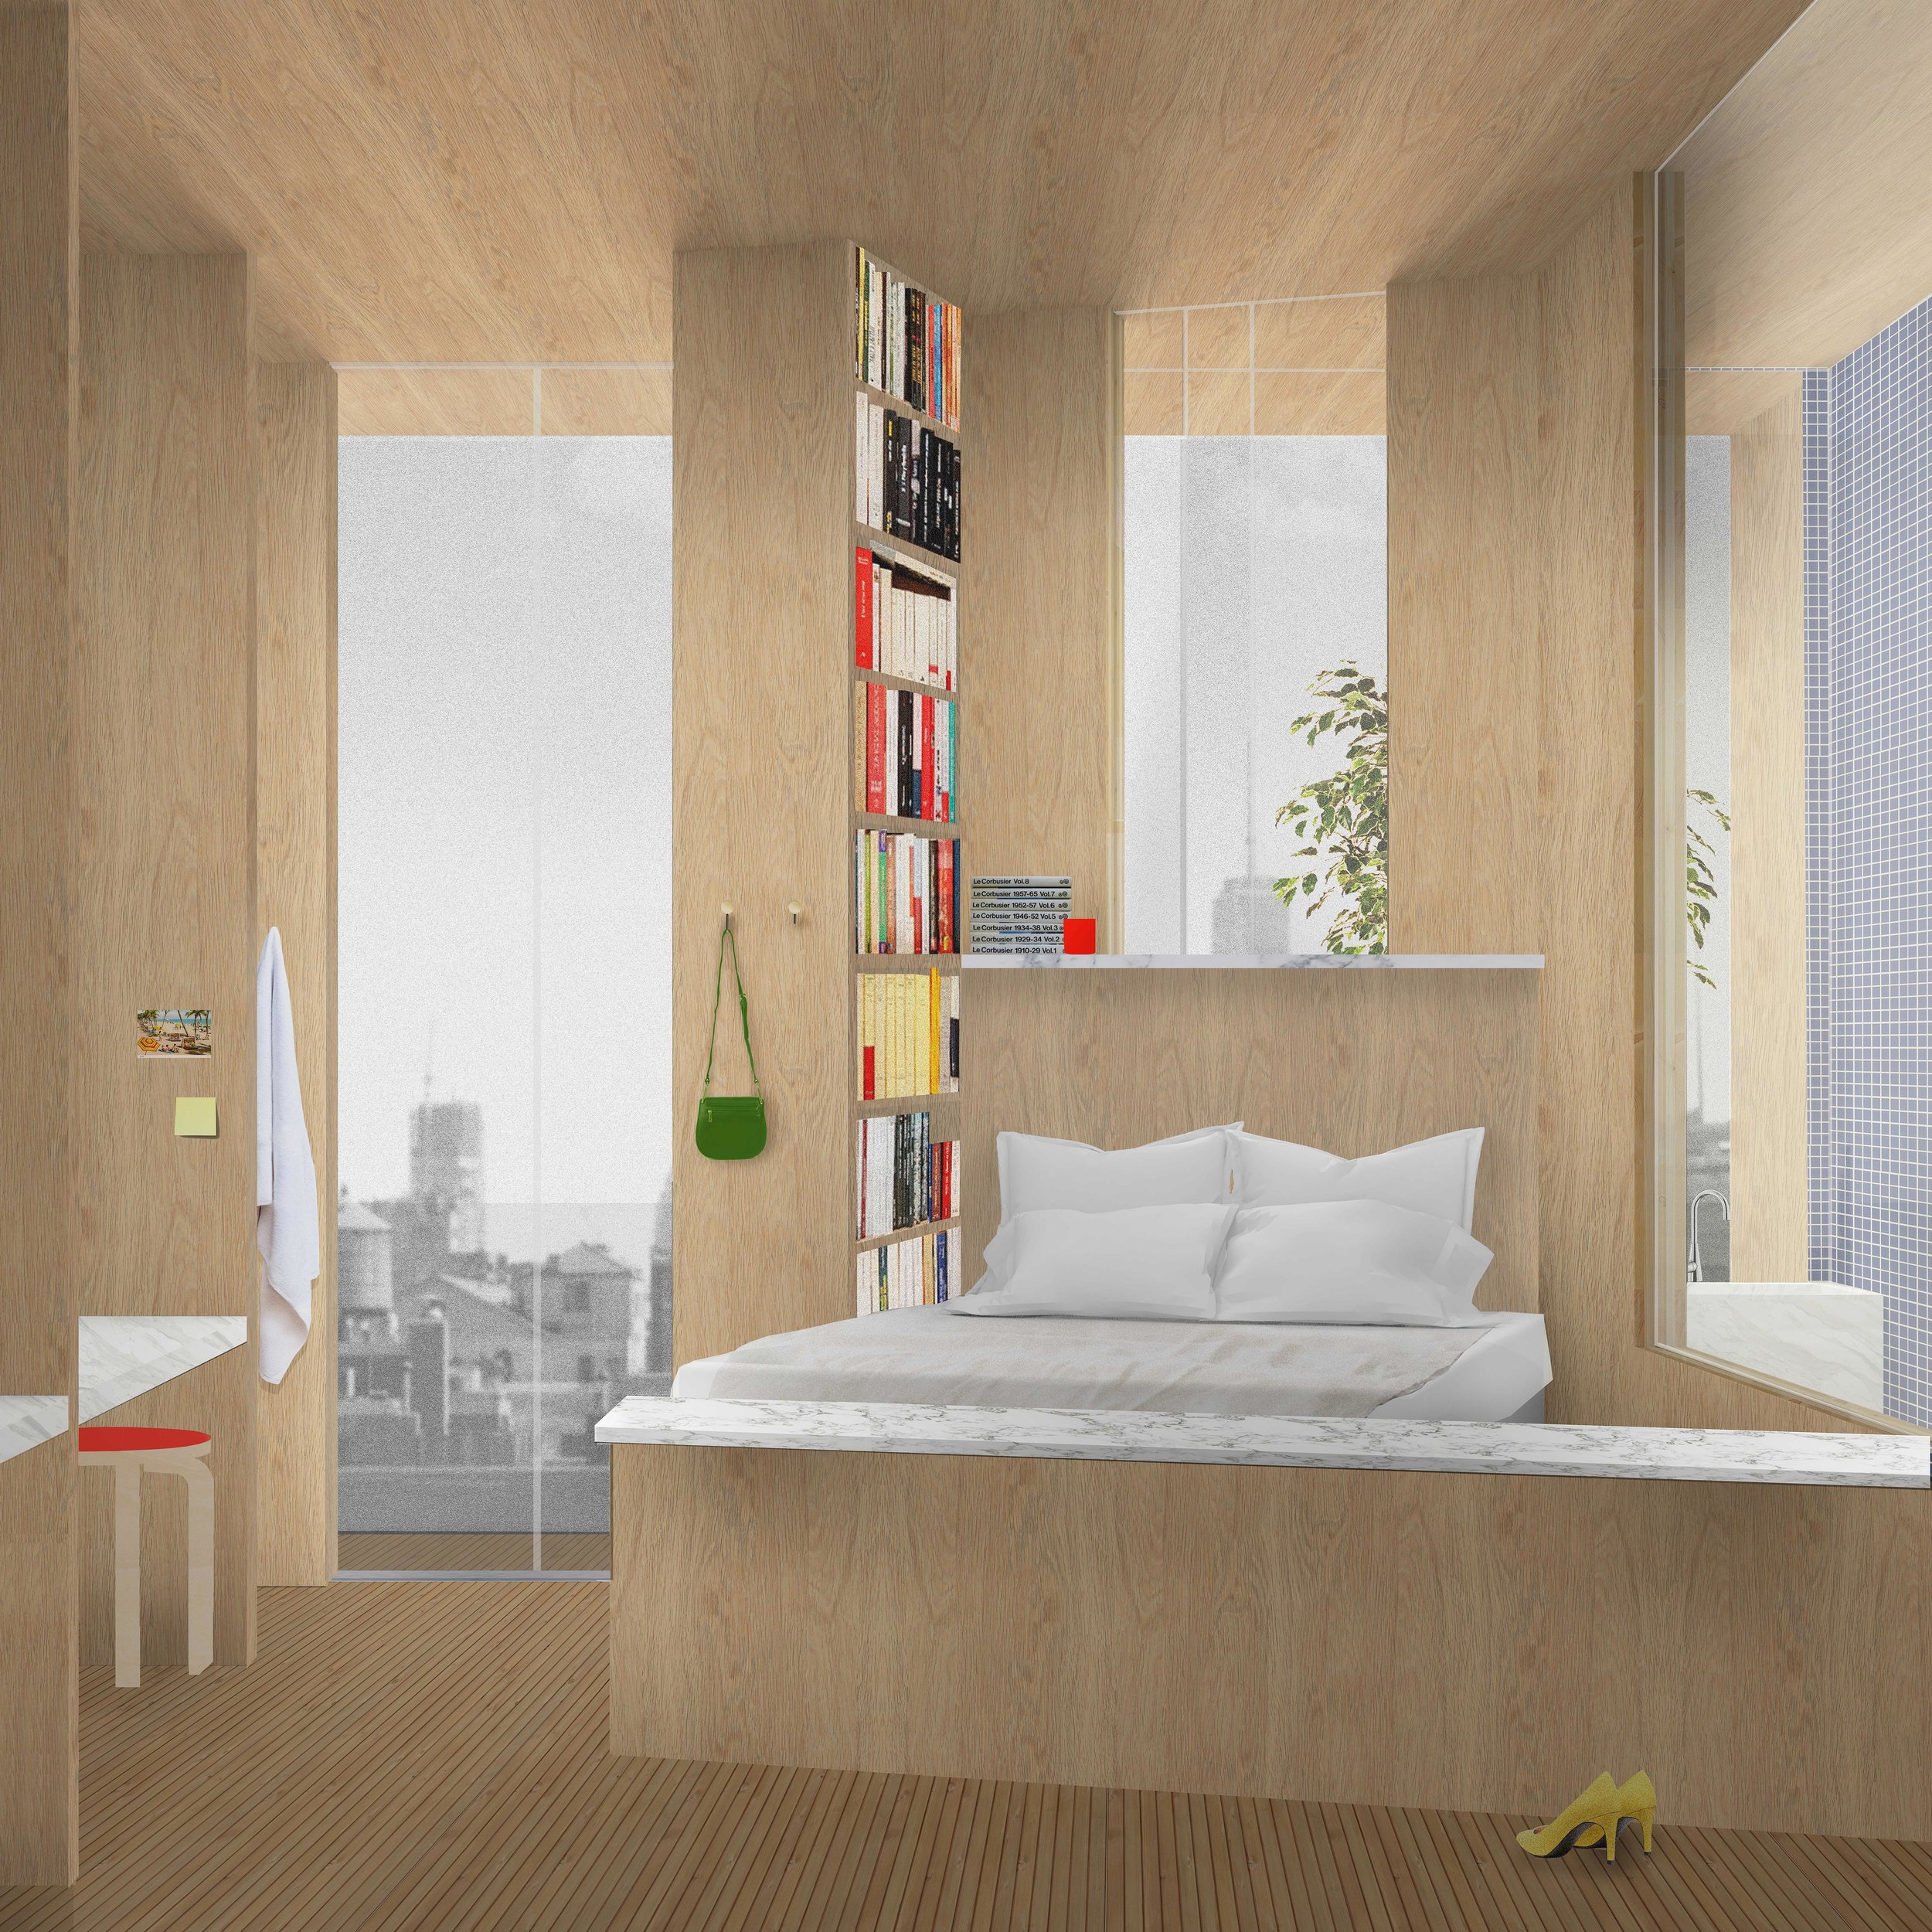 The Young Family utilizes a large bed for sleep, play and conversation. View of lofted space and swing for a young child.